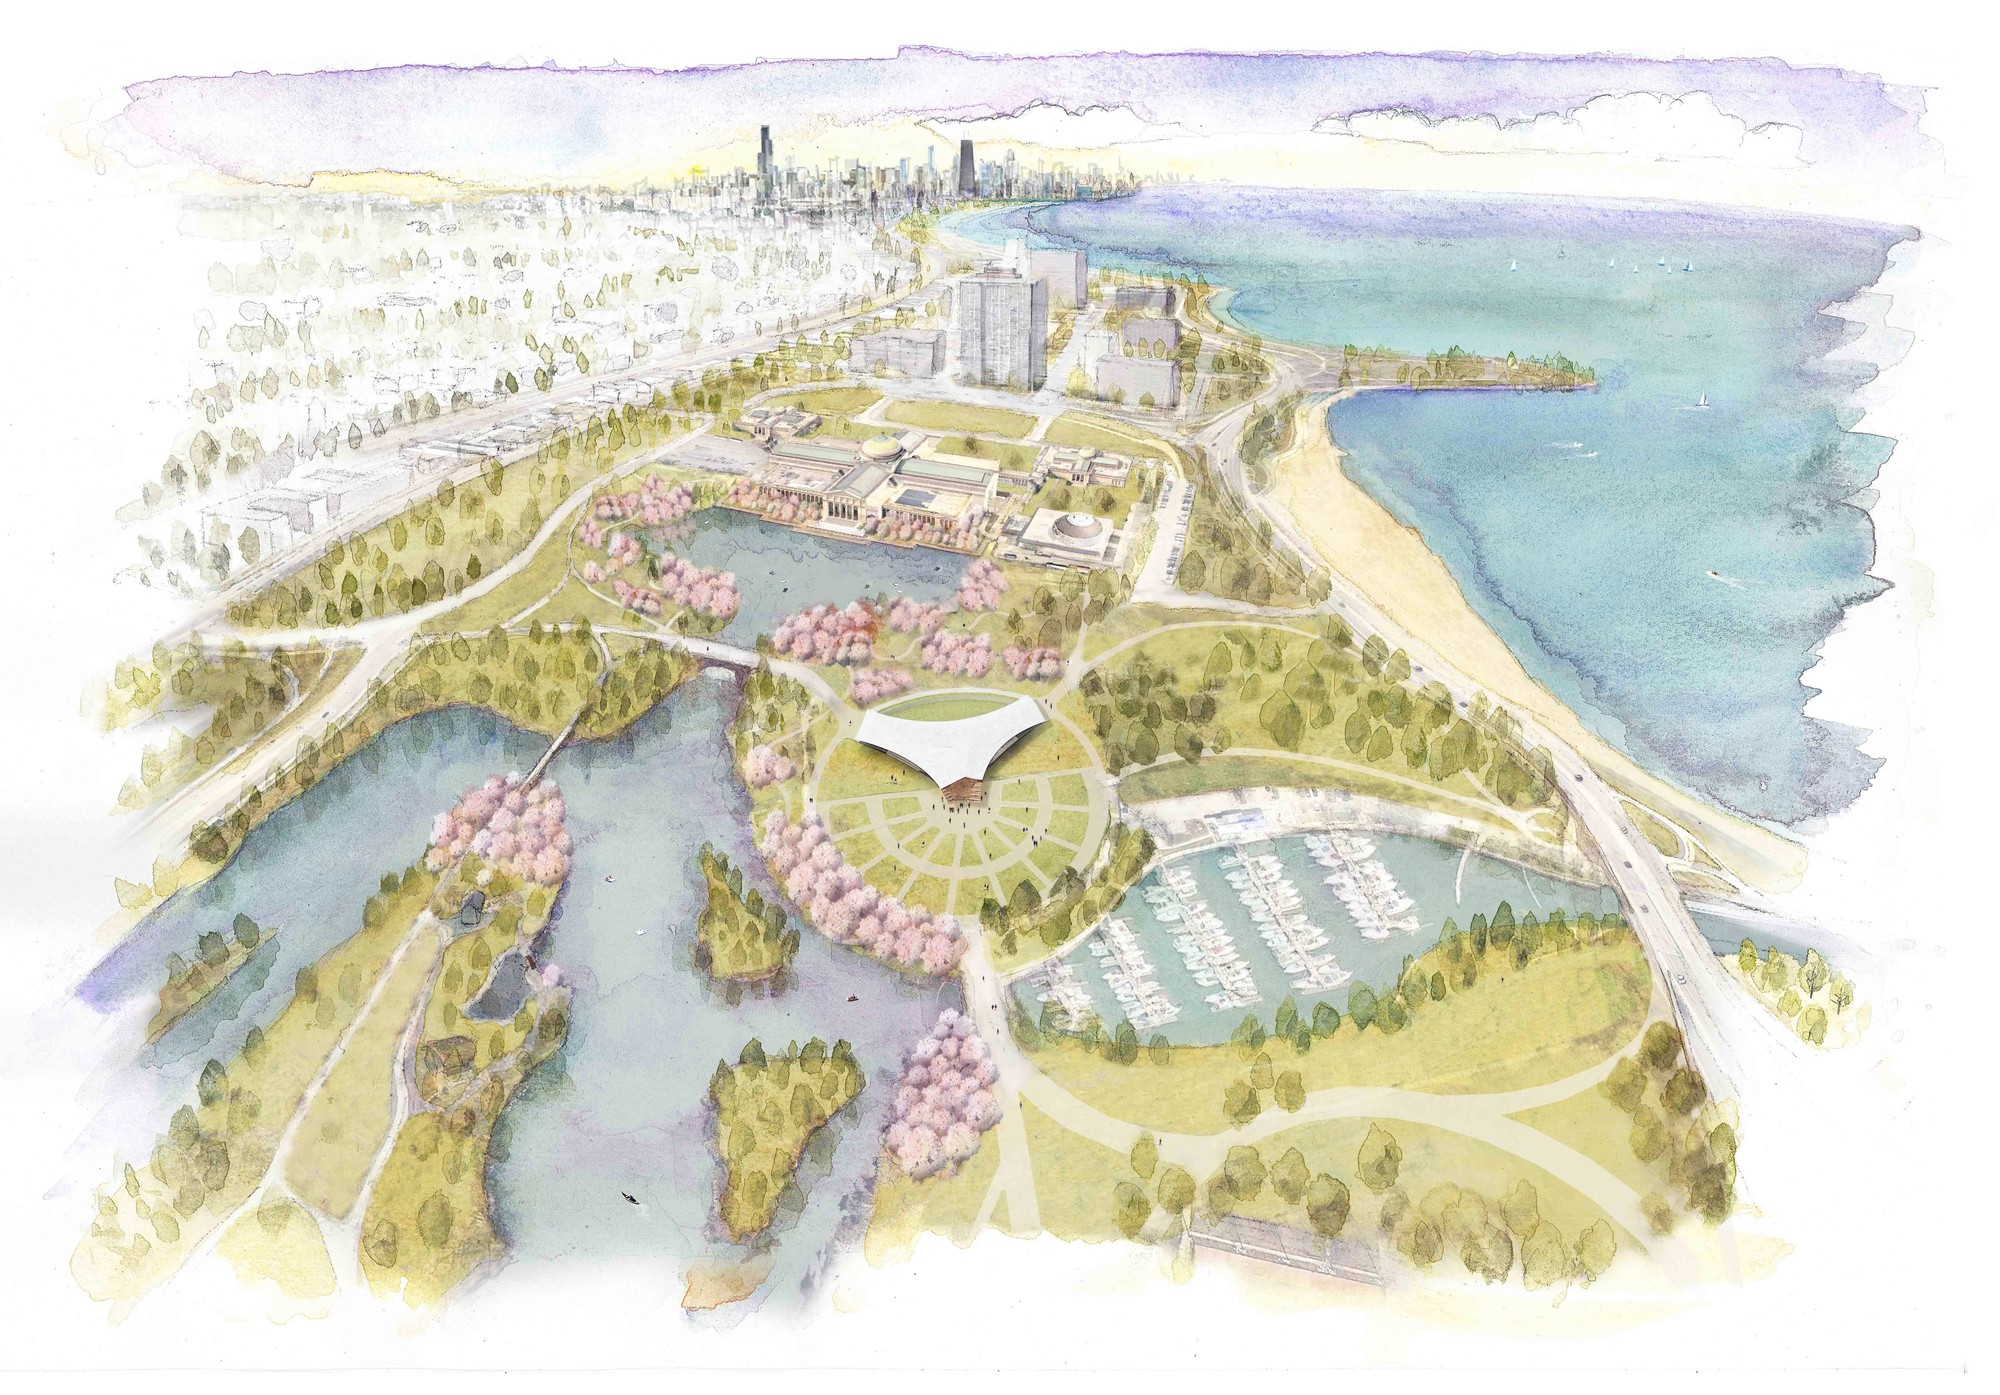 Yoko Ono and Project 120 Collaborate to Reimagine Chicago's Jackson Park, Aerial View of the Park. Image Courtesy of Project 120 Chicago